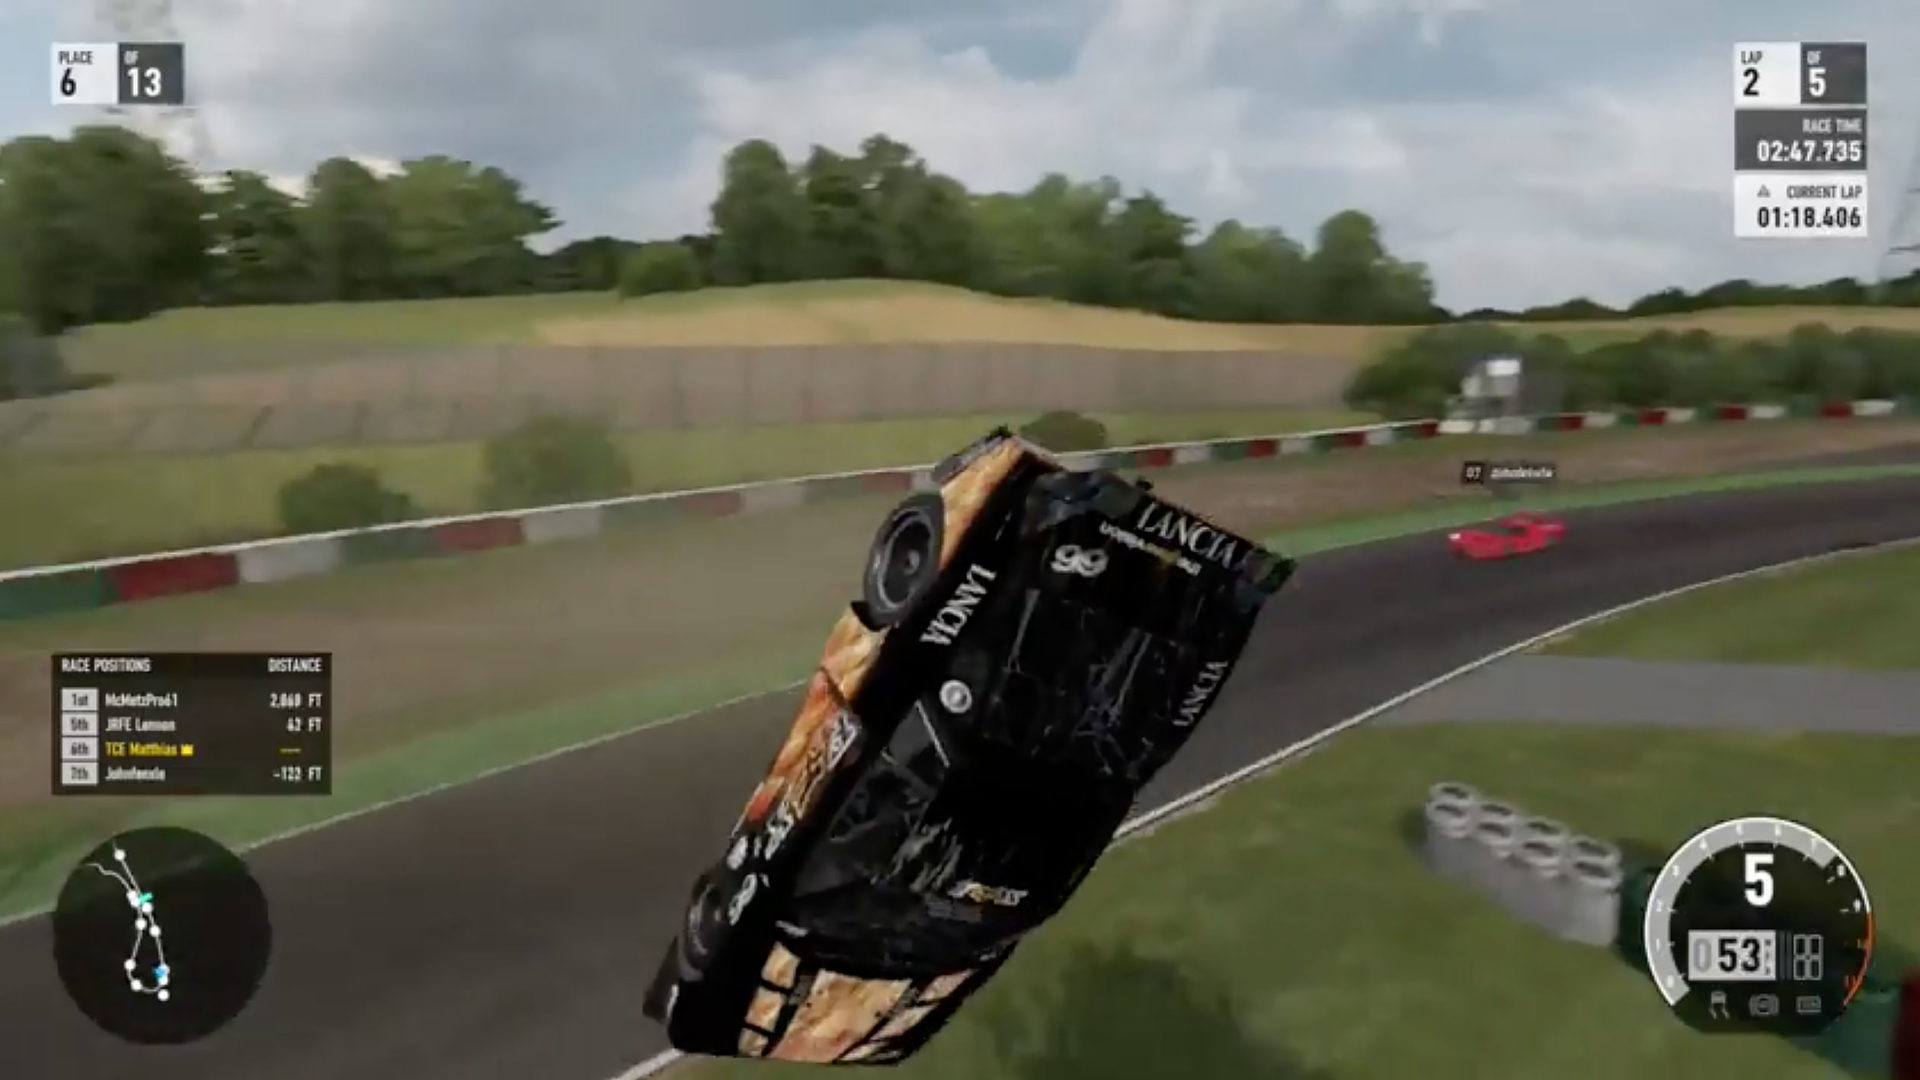 Forza Motorsport space glitch